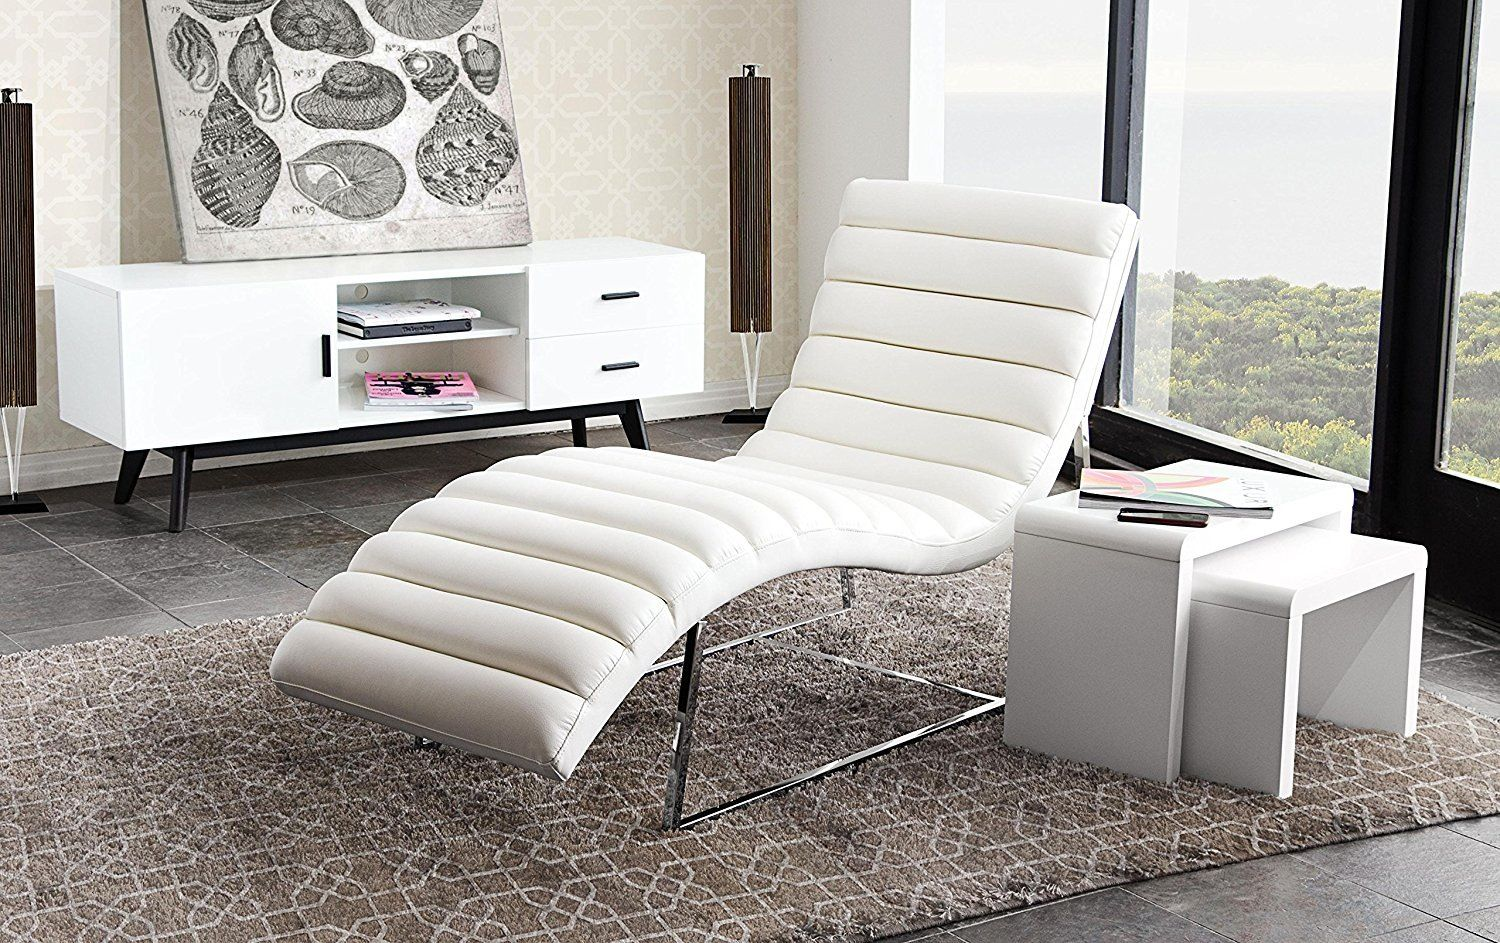 12 Of The Best Looking Modern Chaise Lounges Furniture Lounge